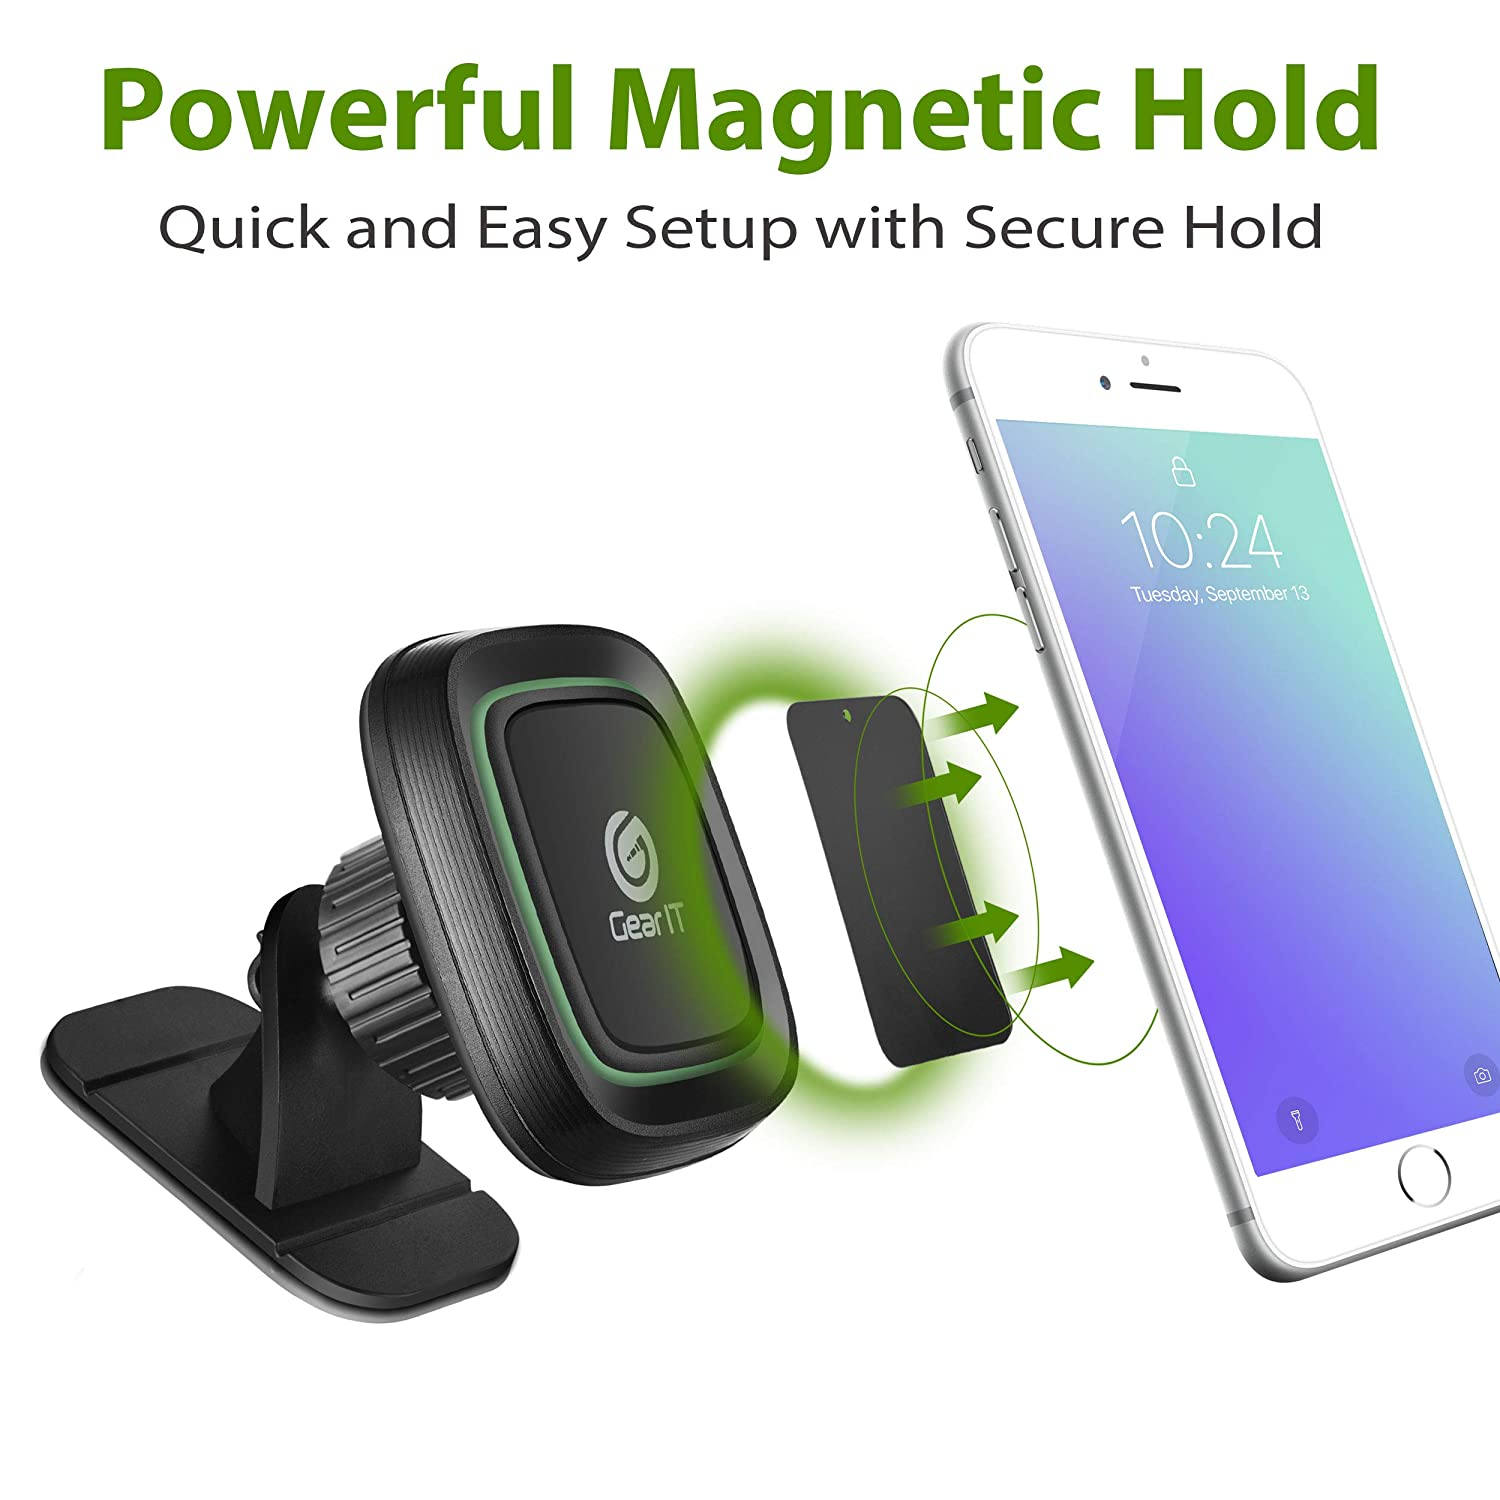 Galaxy S9//S8//S7//Note9//Note8 Universal Dashboard Magnetic Car Phone Mount with 3M Adhesive for iPhone Xs MAX//XS//XR//X//8//7//7P//6s Huawei Smartphones 4350466783 GearIT Cell Phone Holder for Car Pixel 3 XL//2